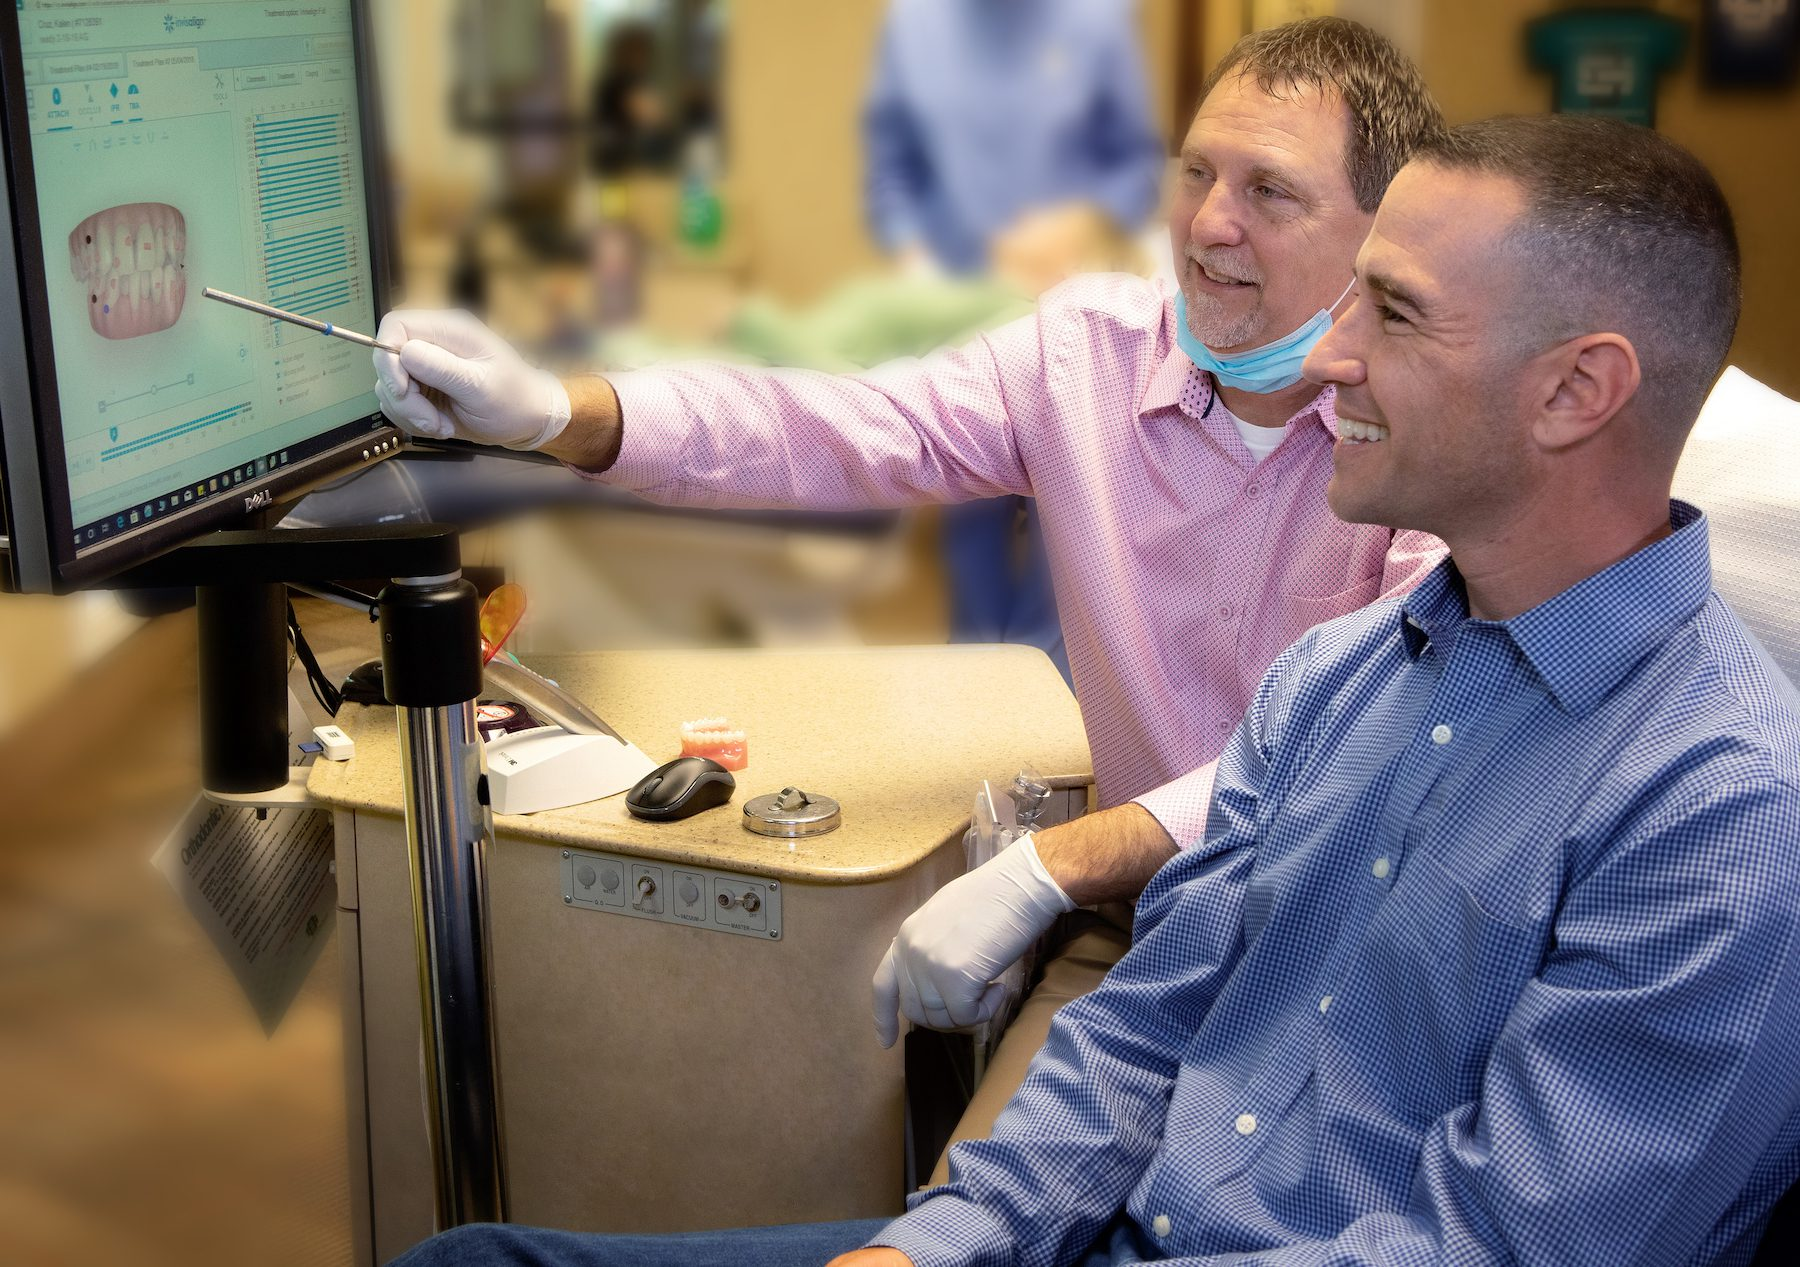 Dr. Spillers, Spillers Orthodontics, patient smiling, orthodontist teaching, pointing at screen, two men